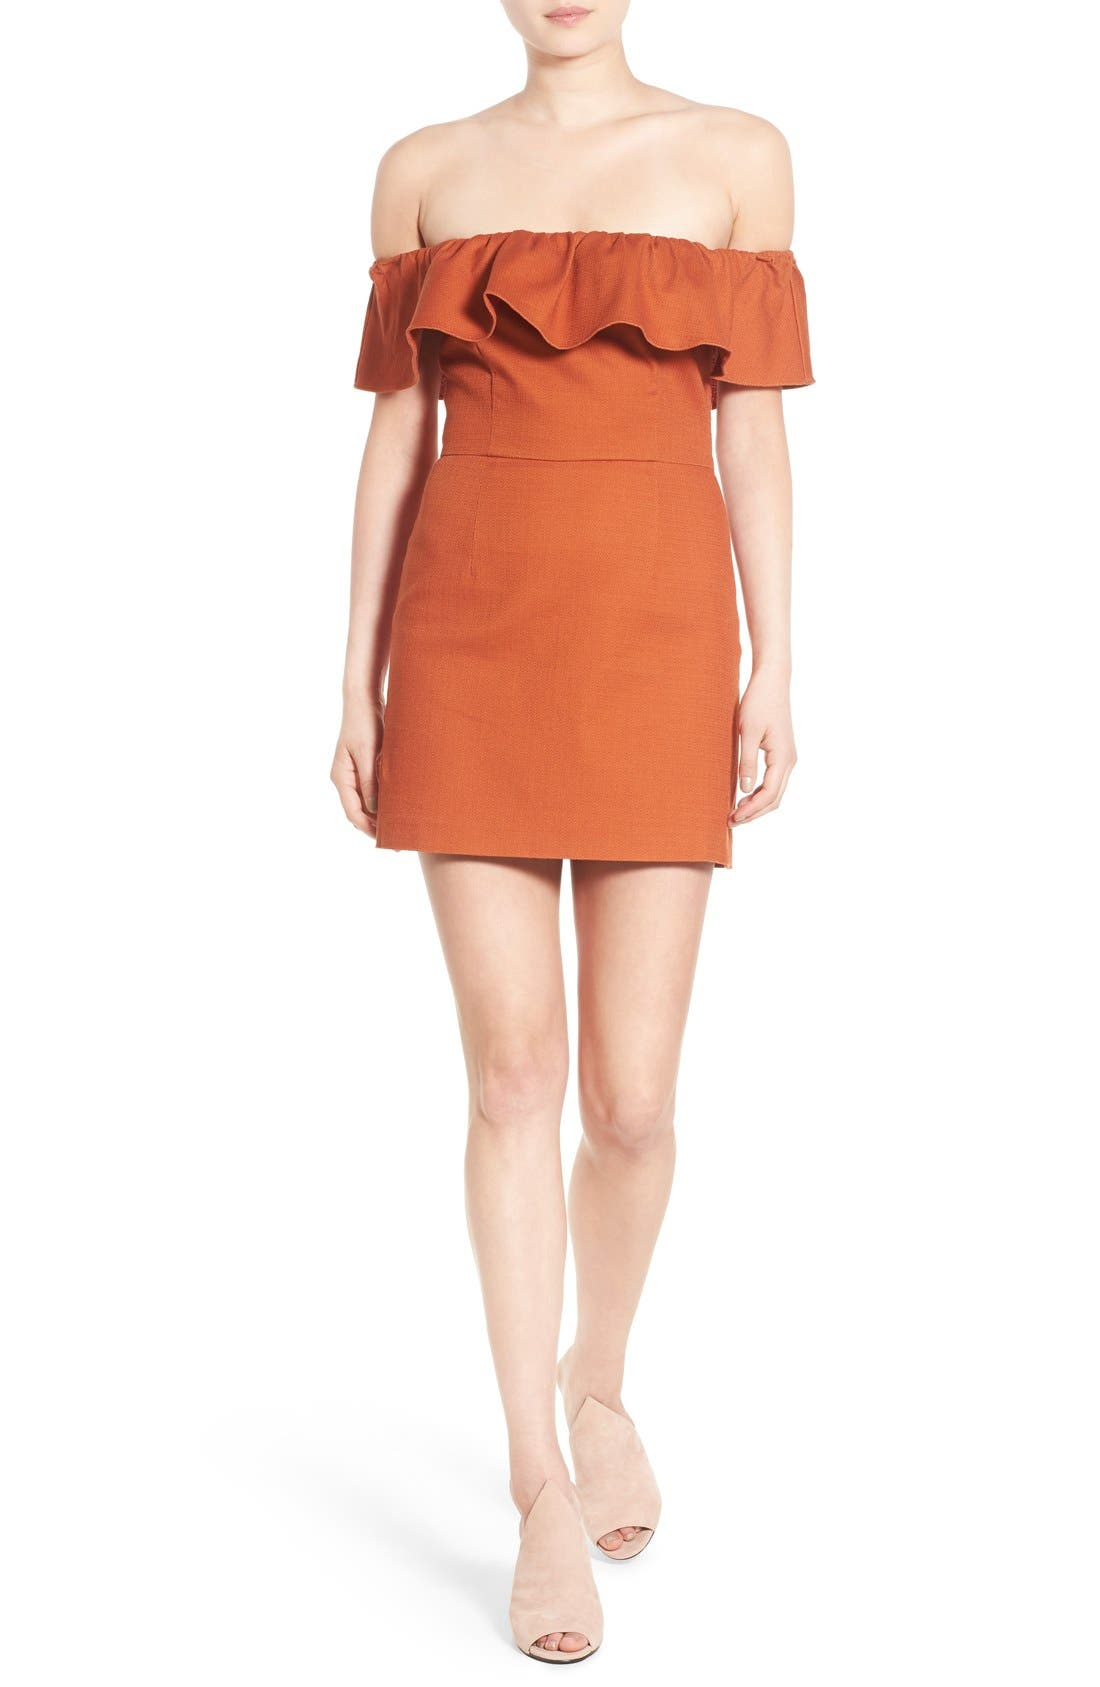 Main Image - KENDALL + KYLIE Ruffle Off the Shoulder Minidress